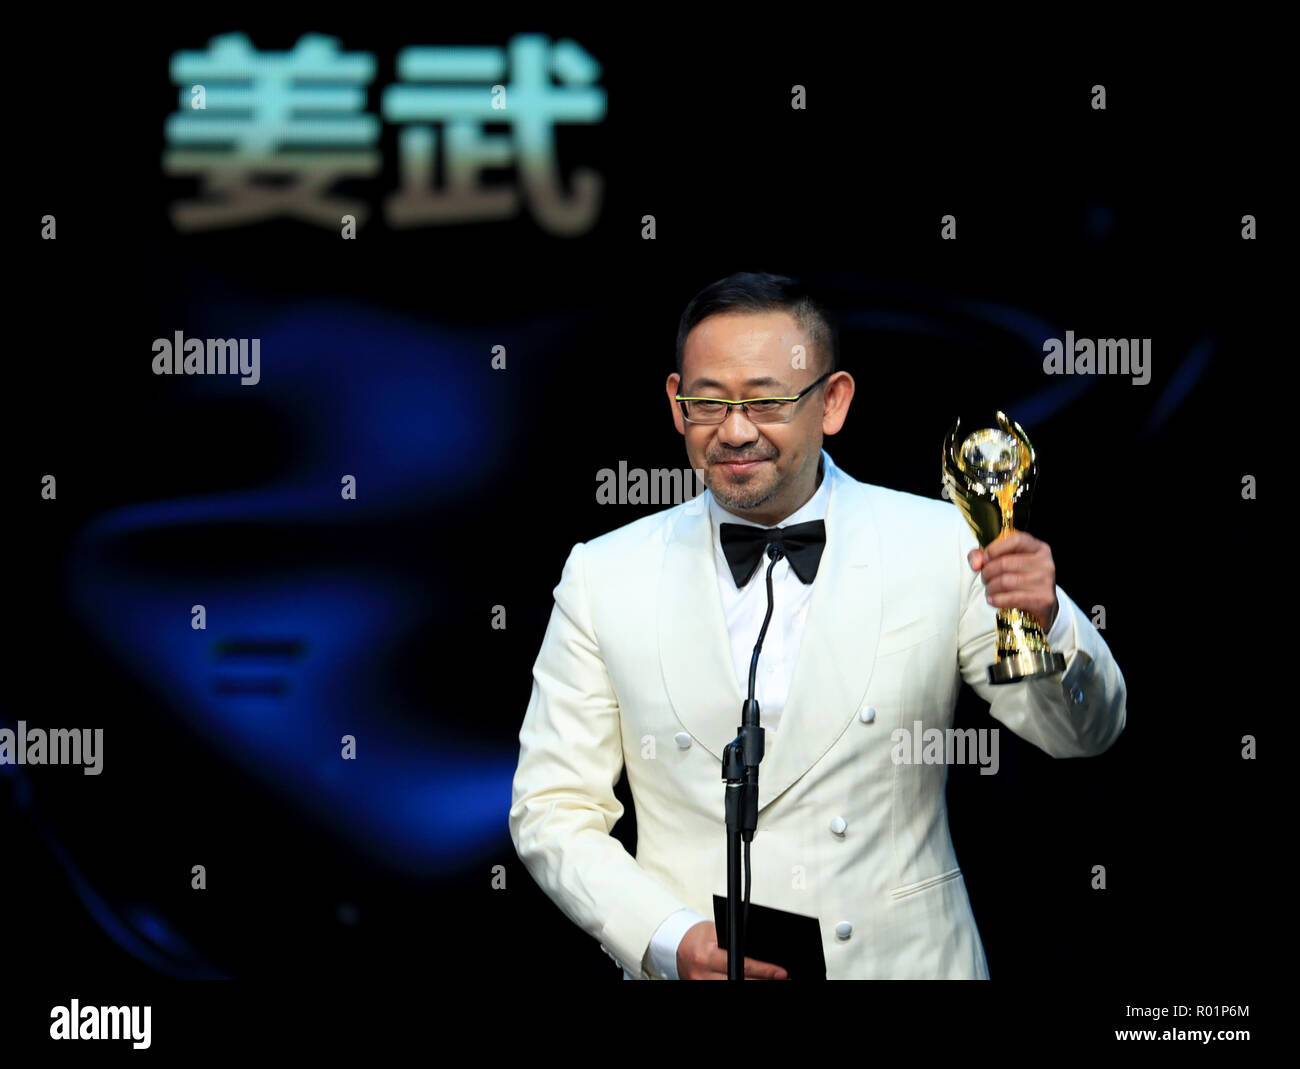 Los Angeles, USA. 30th Oct, 2018. Actor Jiang Wu who won the award of Best Actor in a Supporting Role, receives the trophy during the awarding ceremony of the 14th Chinese American Film Festival (CAFF) in Los Angeles, the United States, Oct. 30, 2018. The 14th Chinese American Film Festival (CAFF) kicked off Tuesday at the Ricardo Montalban Theater in Hollywood in the U.S. city of Los Angeles. Credit: Li Ying/Xinhua/Alamy Live News - Stock Image